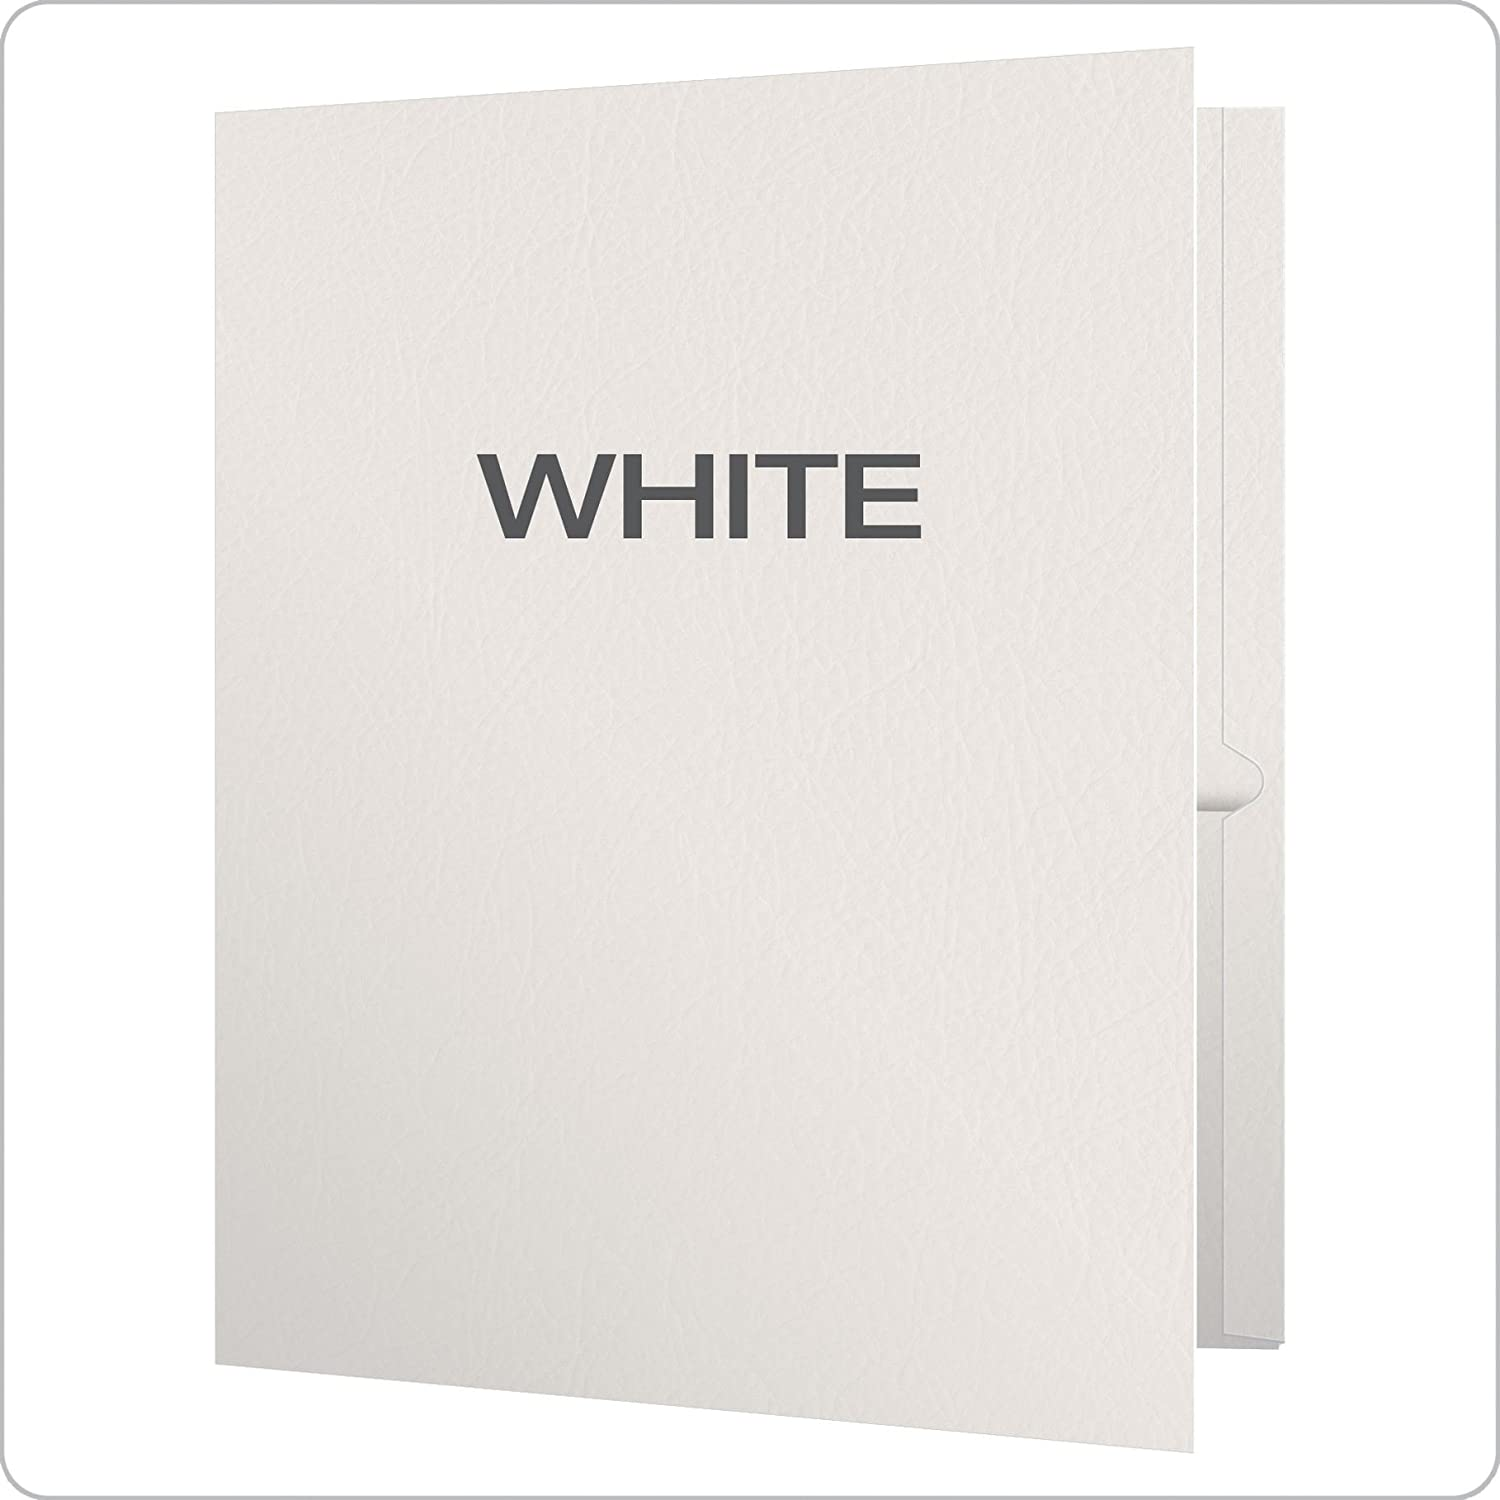 Oxford Twin-Pocket Folders Letter Size Textured Paper Box of 25 57504EE - 1 Holds 100 Sheets White